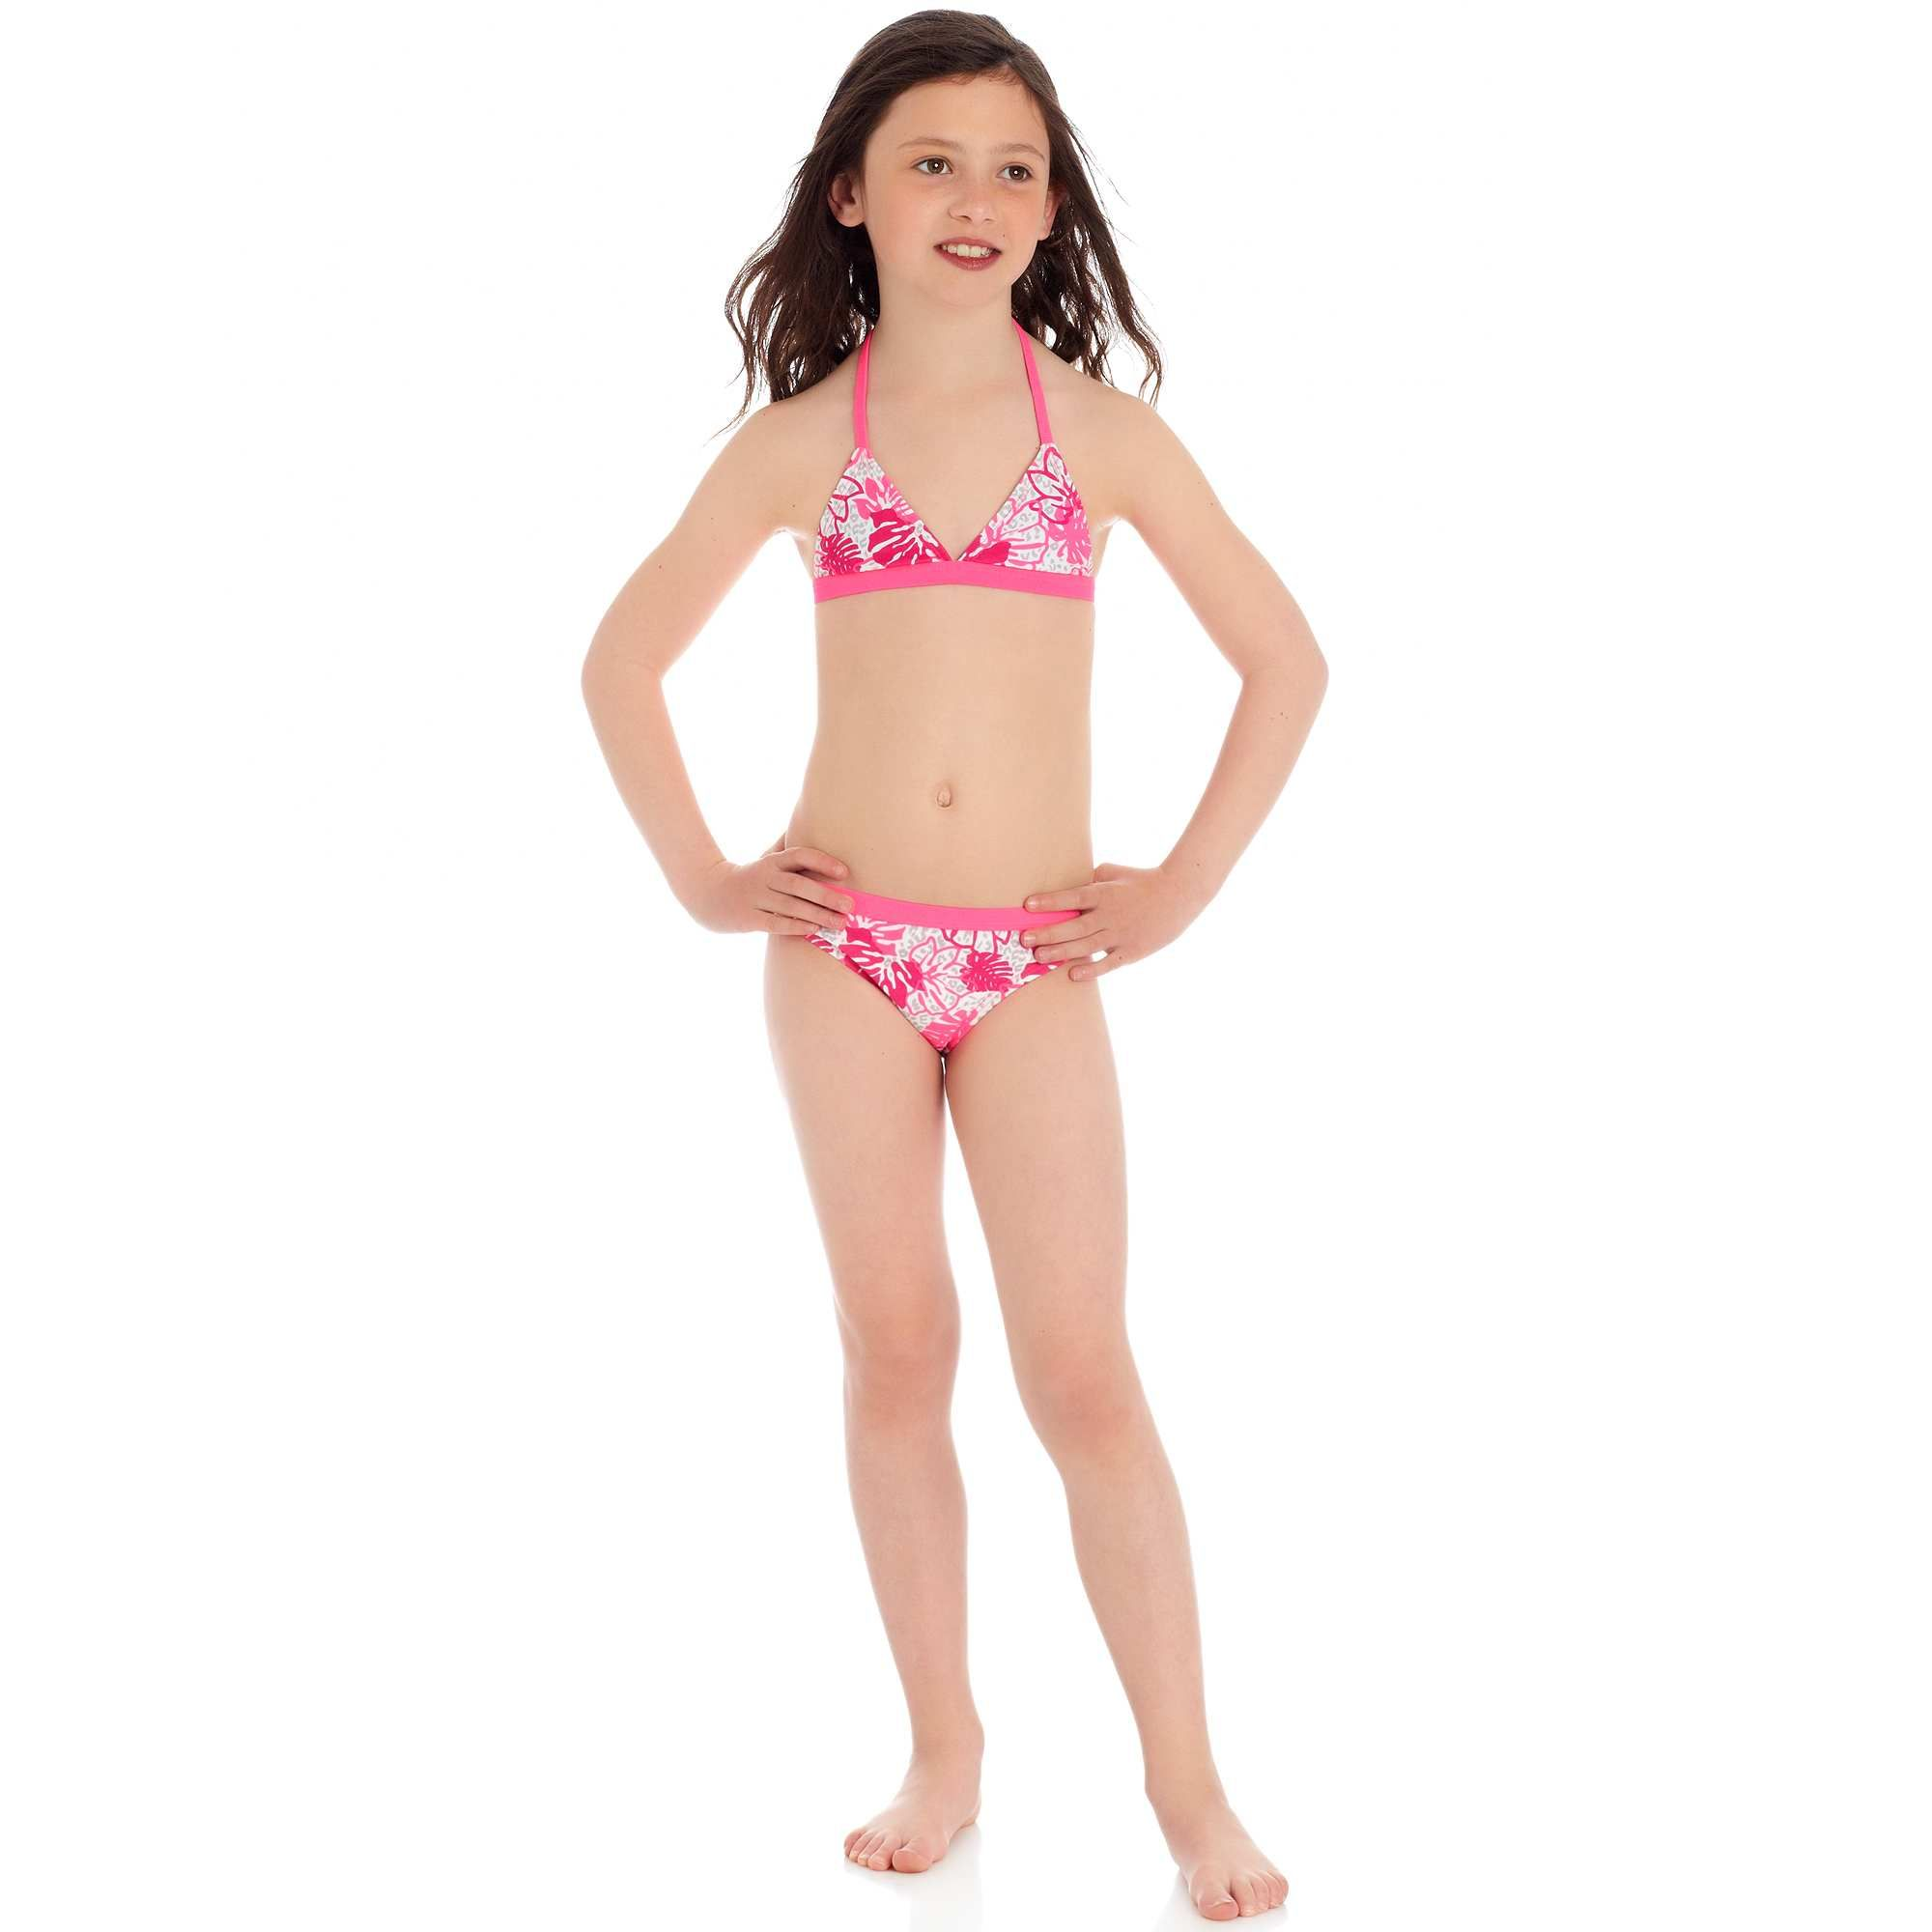 Swimwear, Girls, Bathing Suits, Little Girls, Swimming Suits, Daughters,  Maids, Swimsuit, Swimsuits